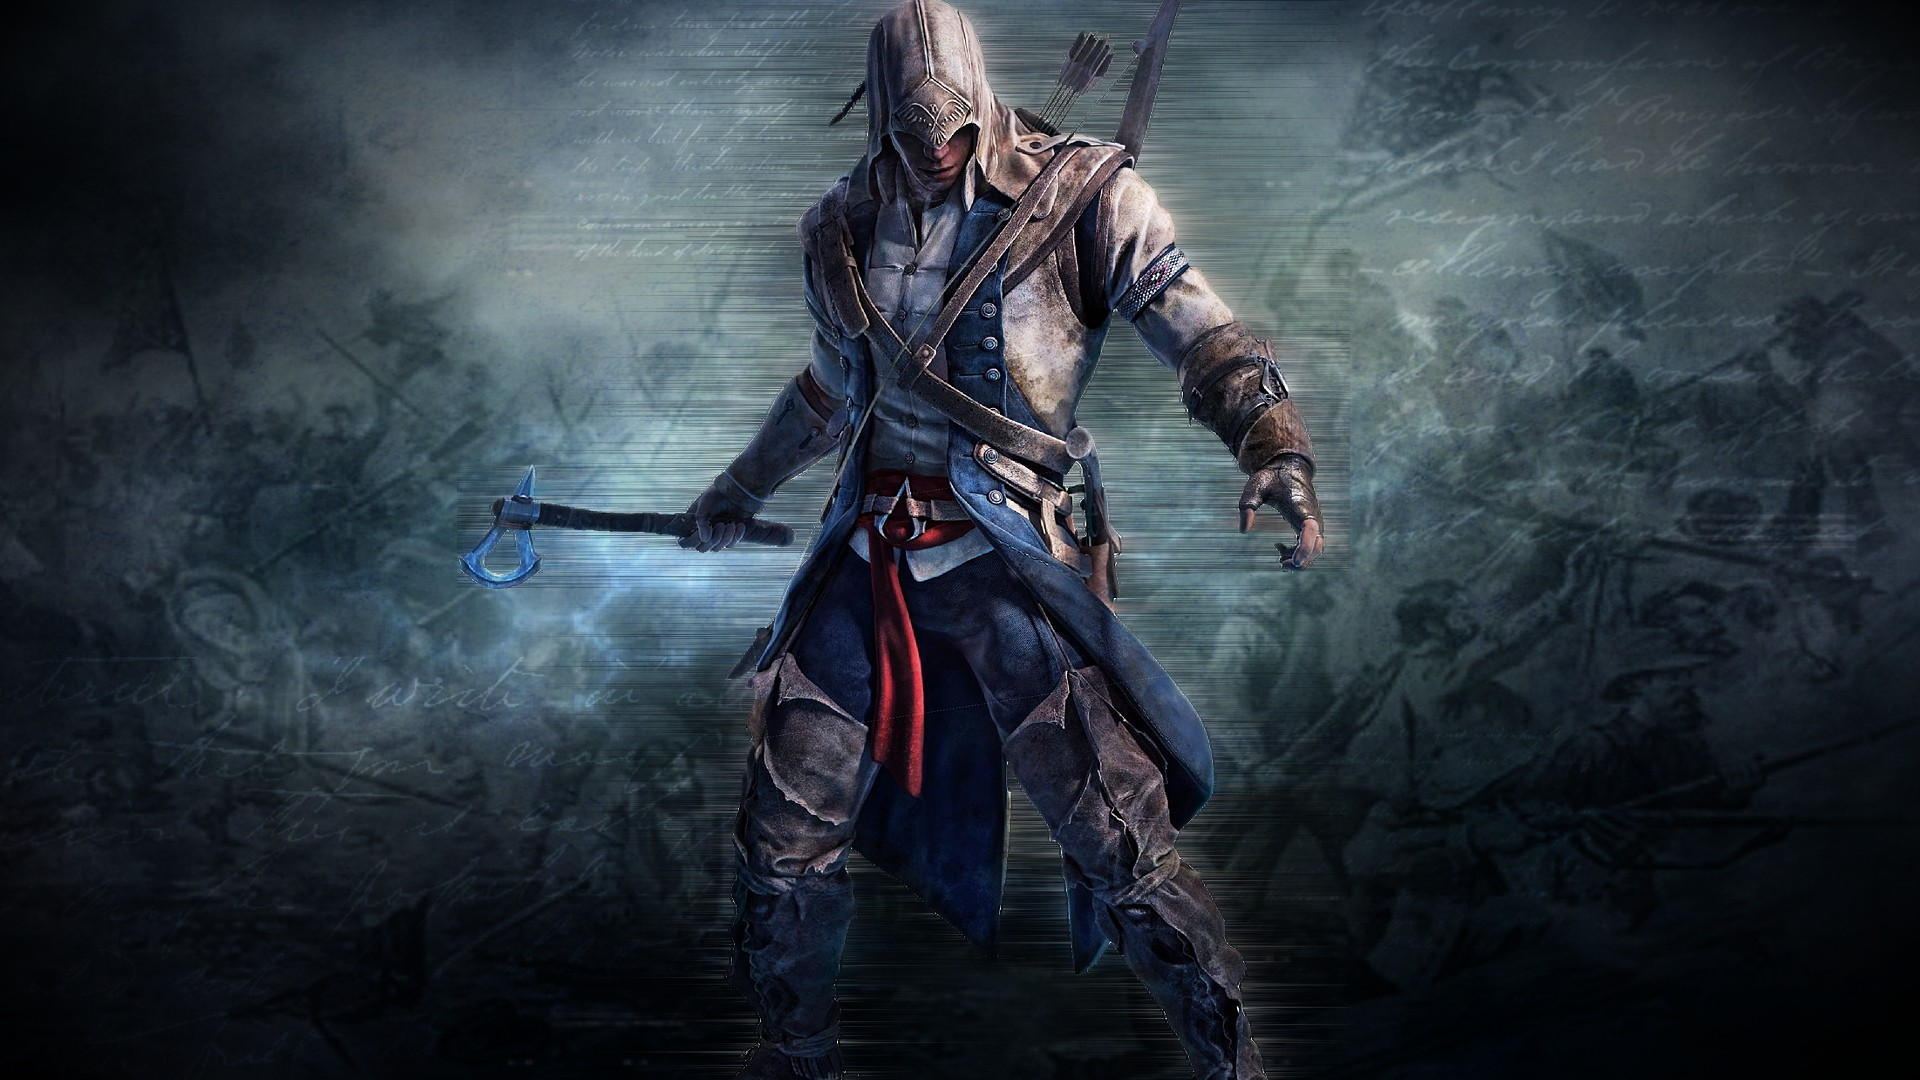 Assassins Creed 3 Wallpaper Hd 175132 1920x1080